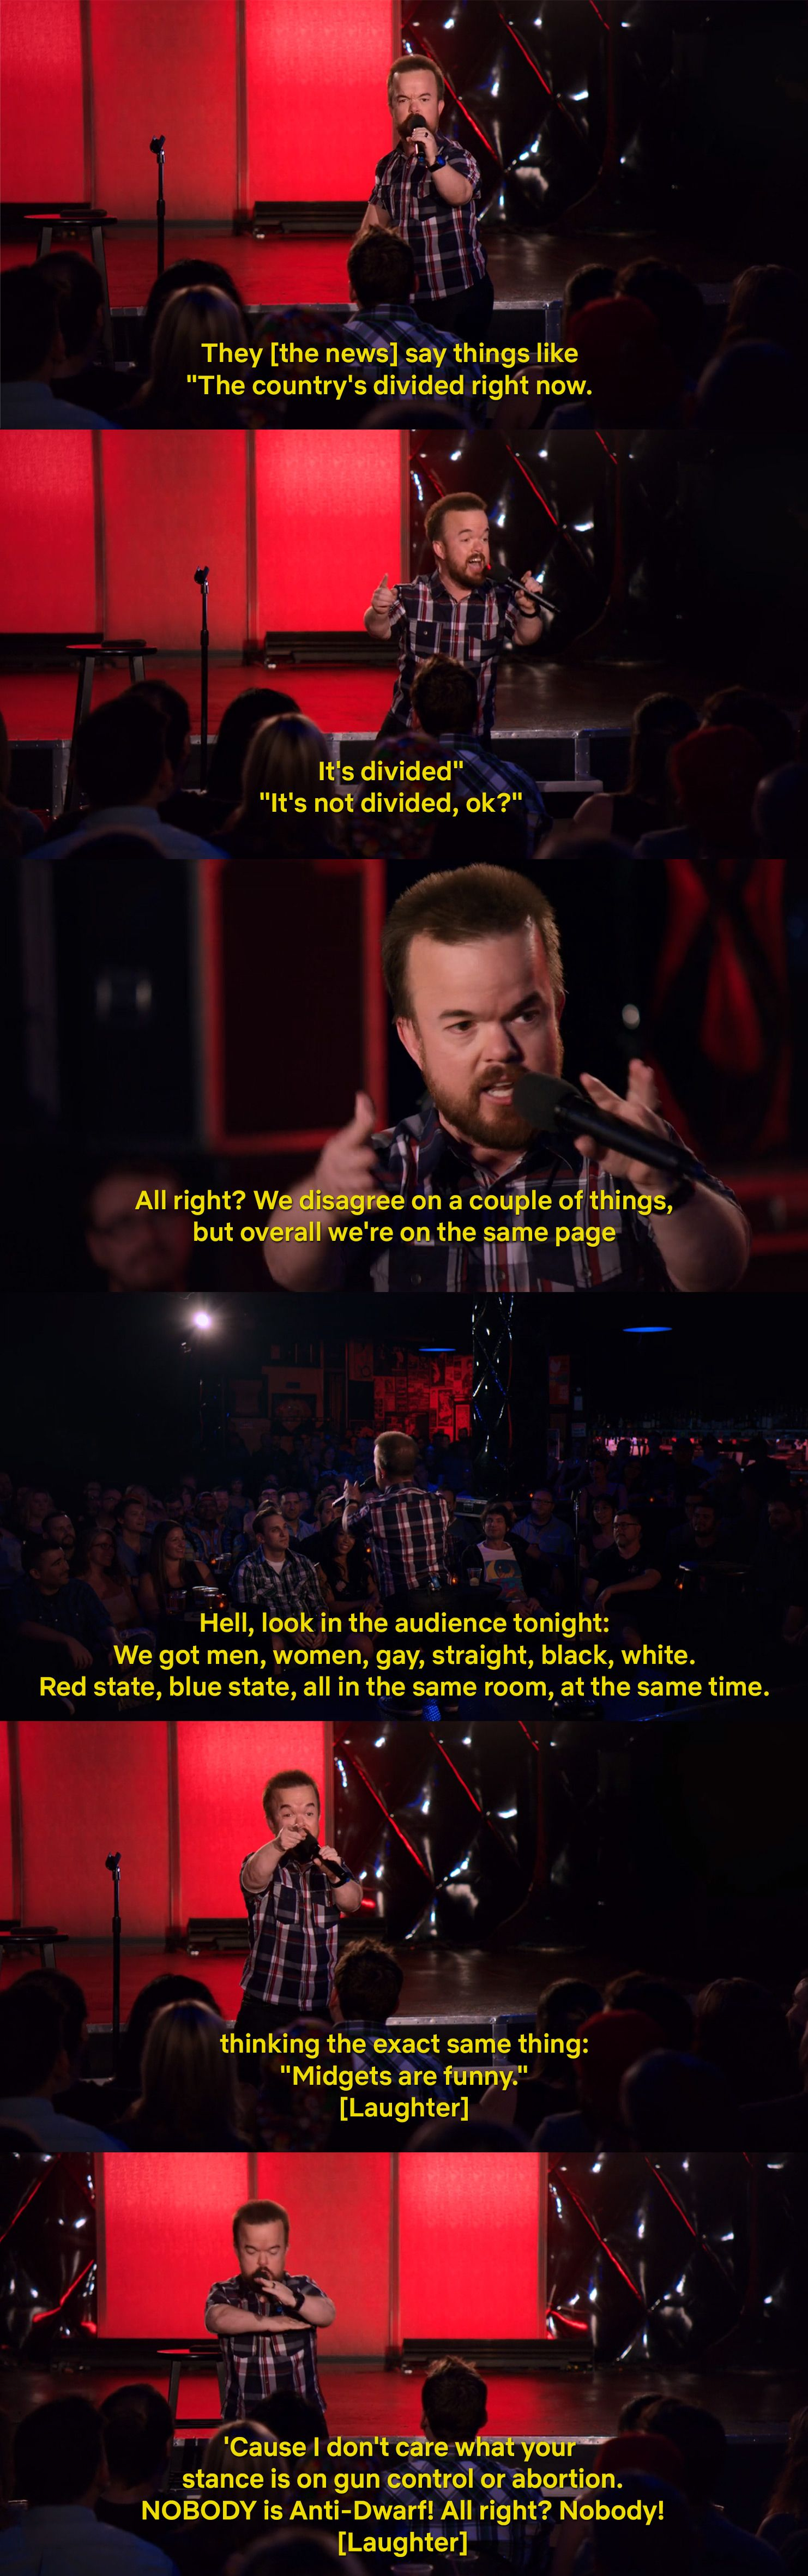 Brad Williams uniting this country one joke at a time.